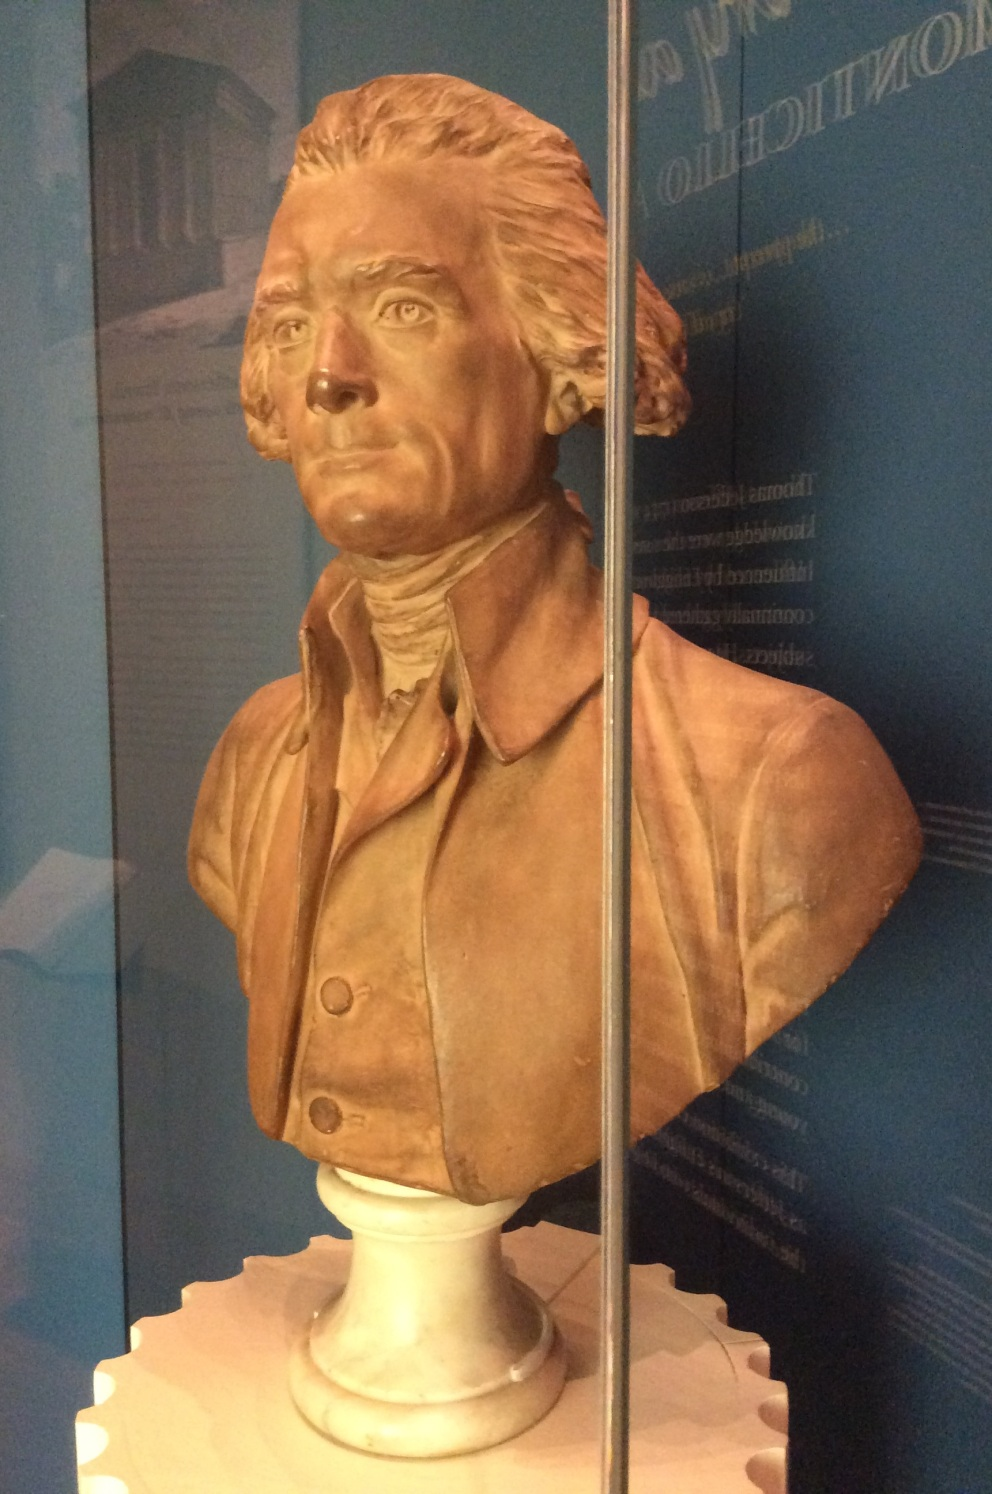 Bust of Thomas Jefferson at the Monticello museum, photo 2015 by Amy Cools